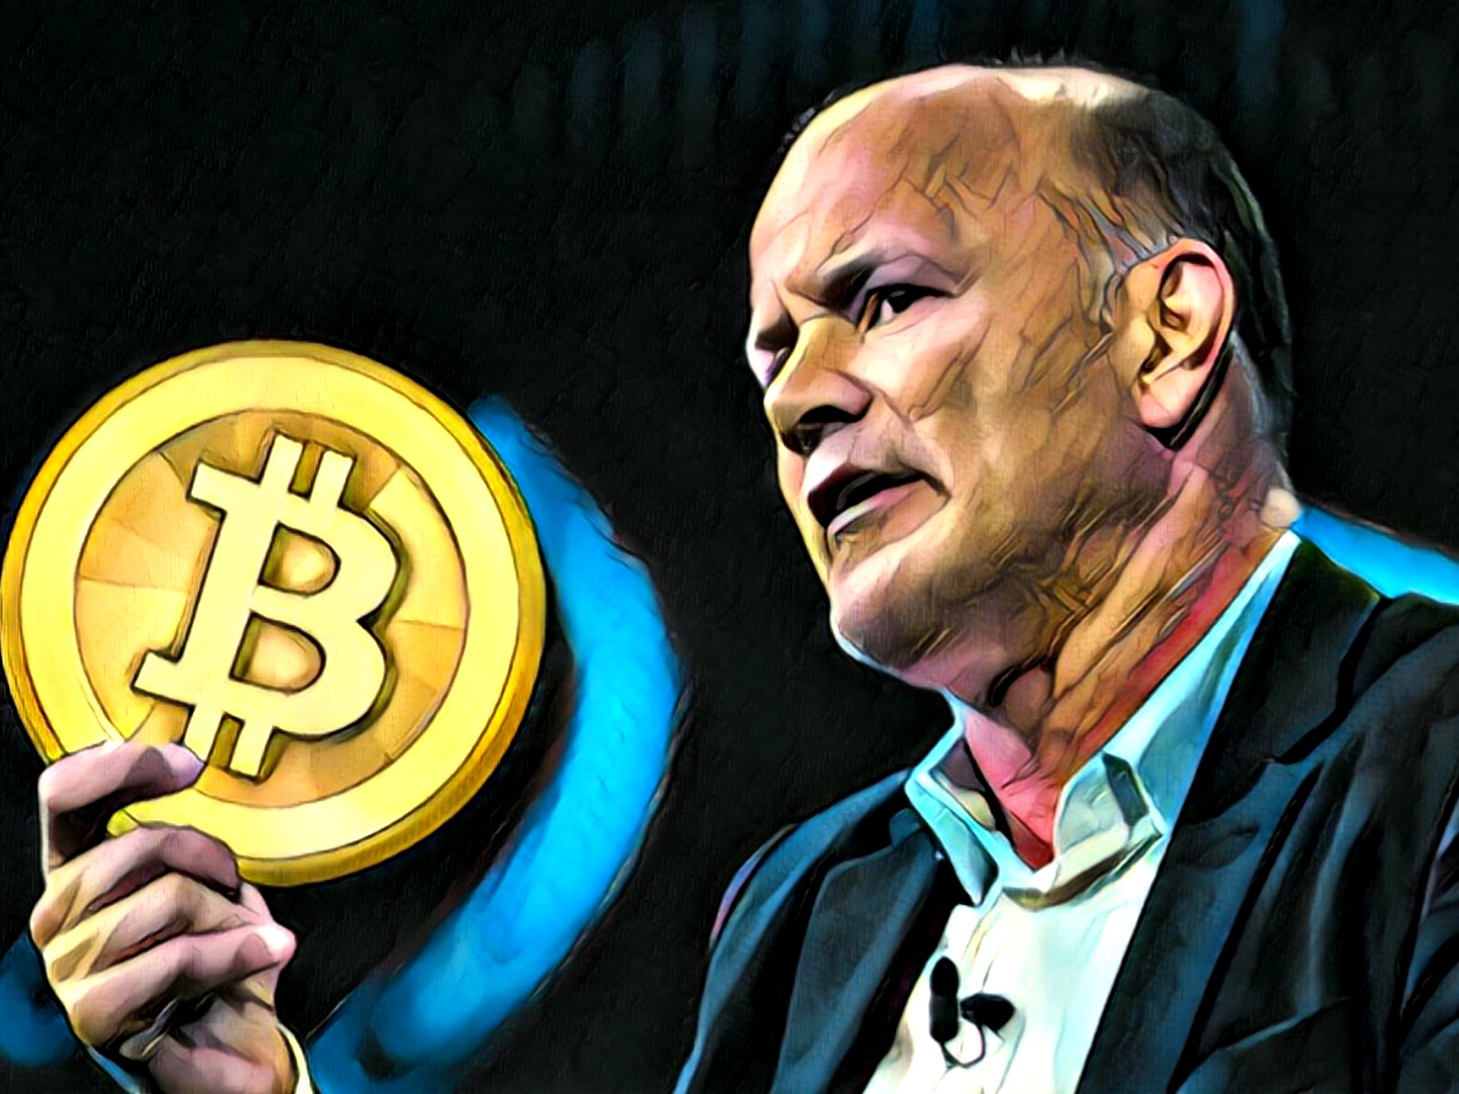 Mike Novogratz Price Prediction Bitcoin BTC